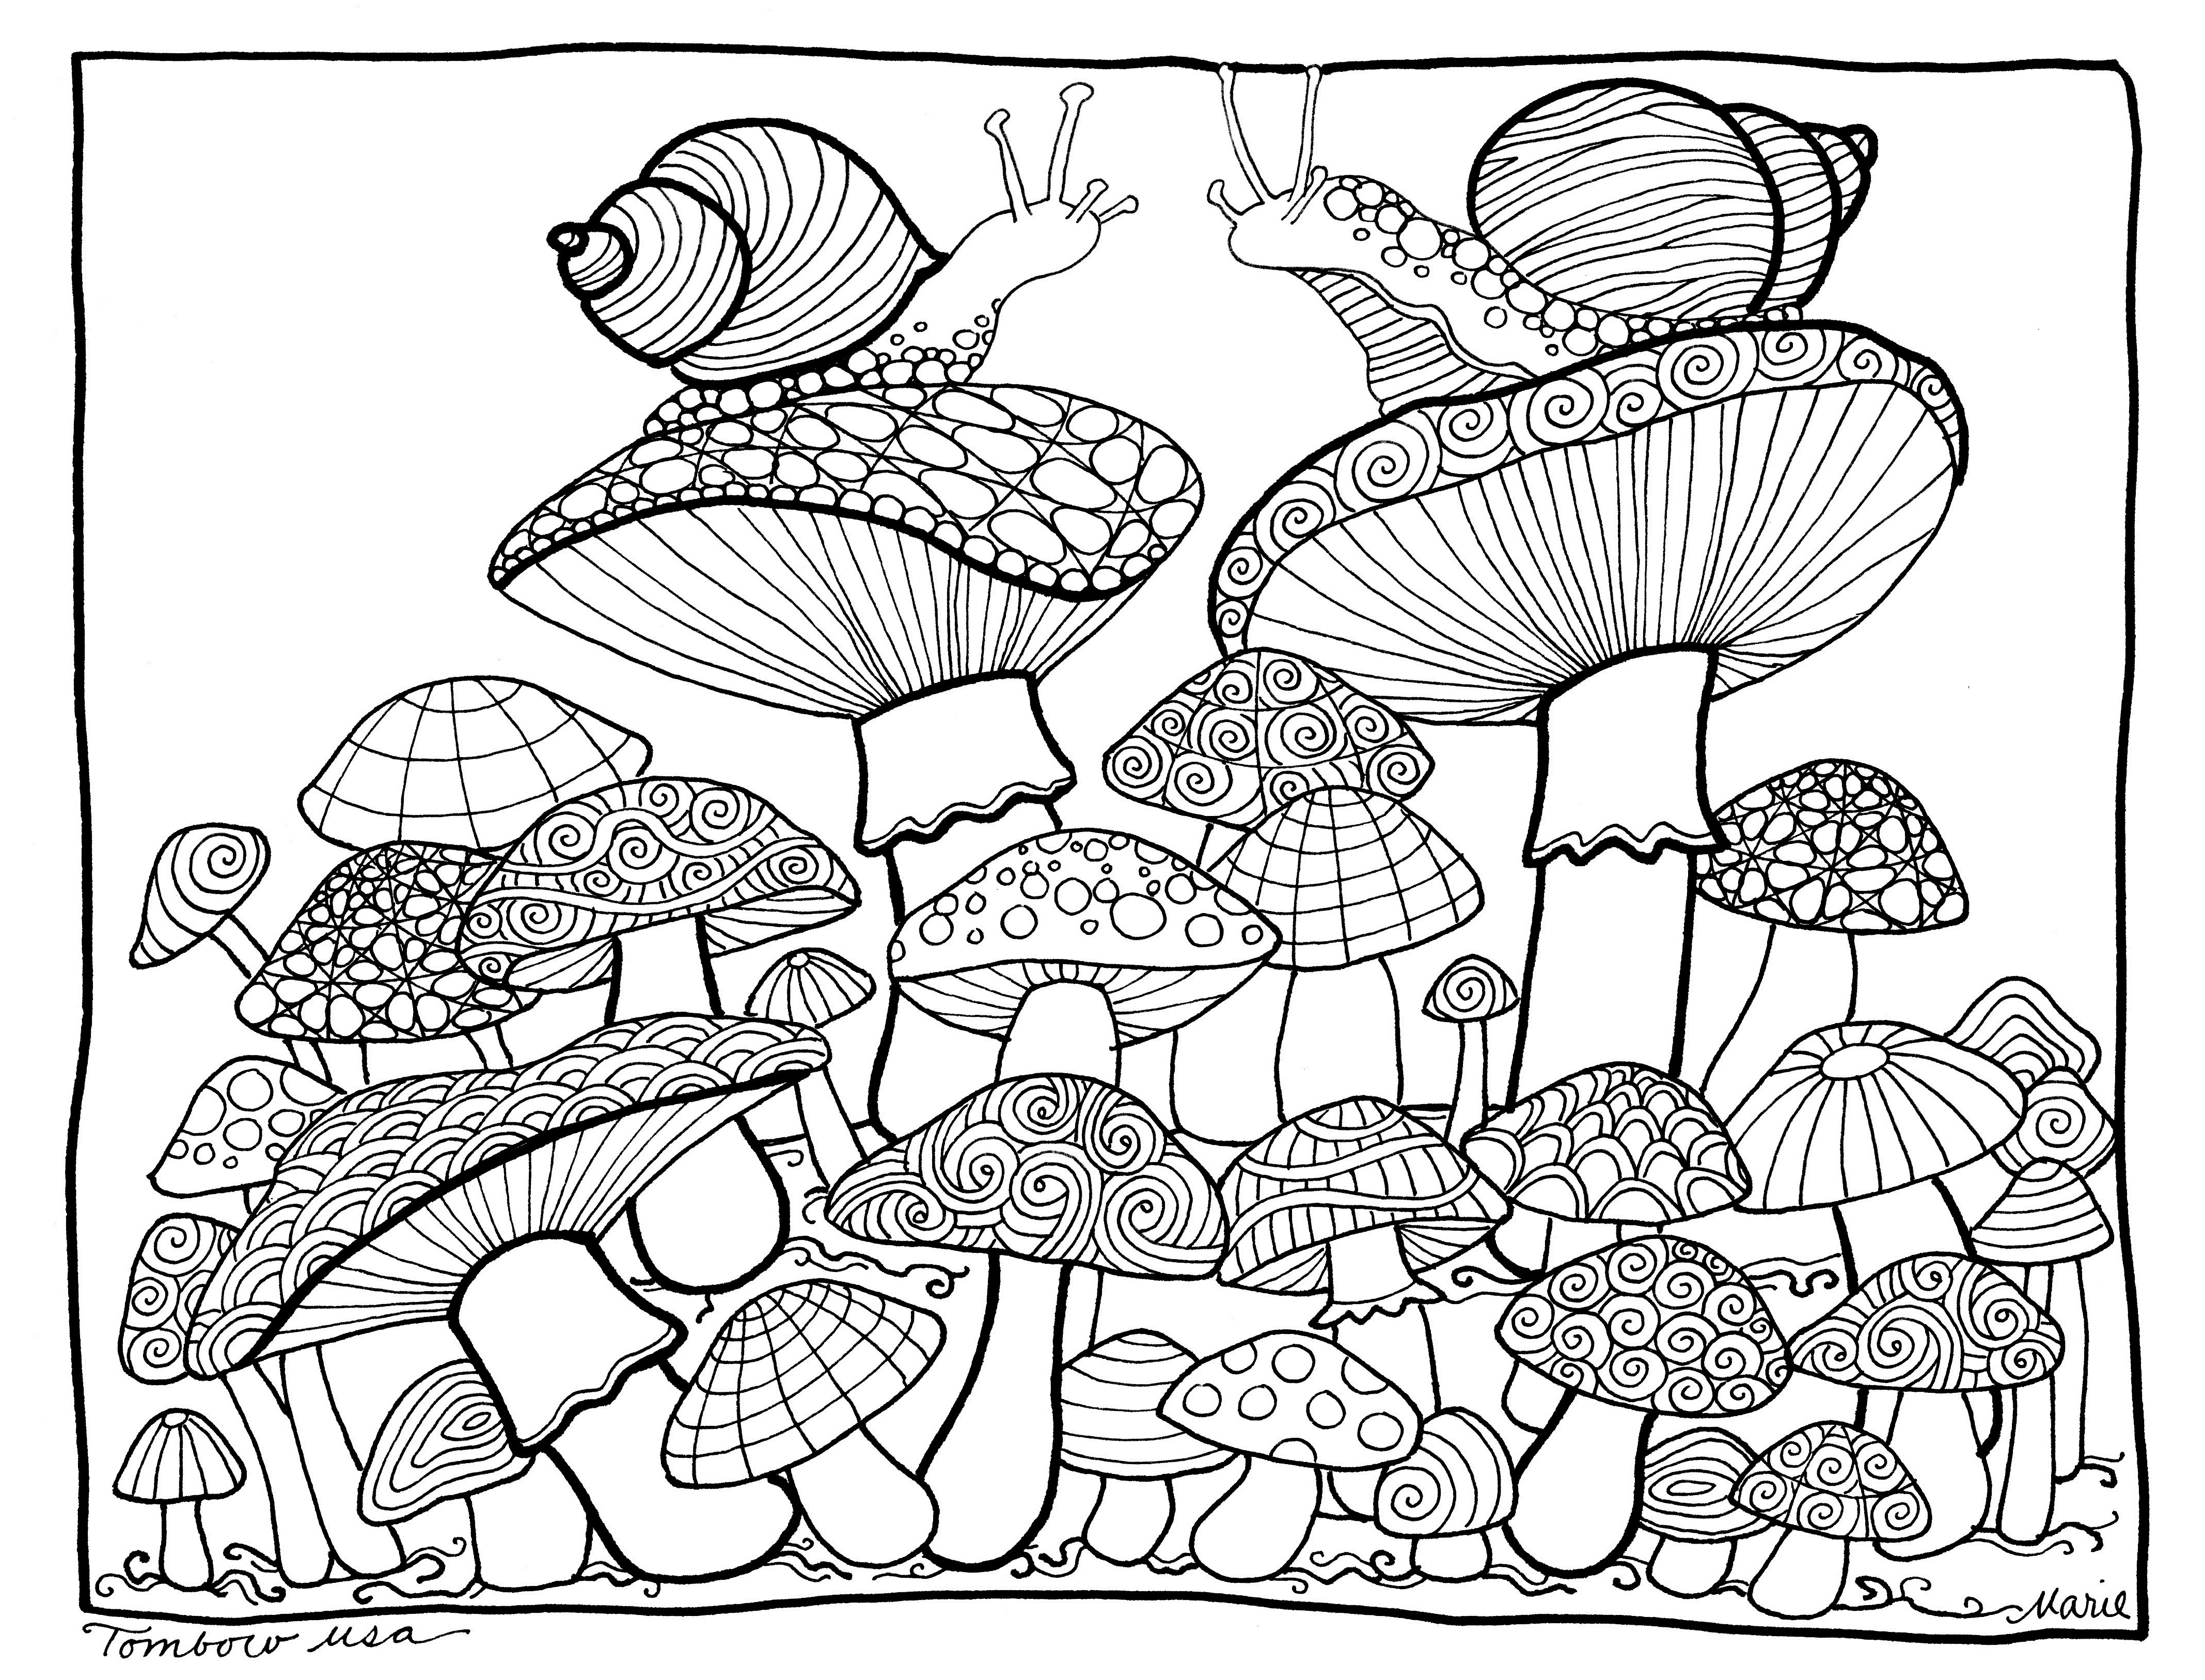 4270x3253 Mushroom Coloring Page Illustrated By Marie Browning